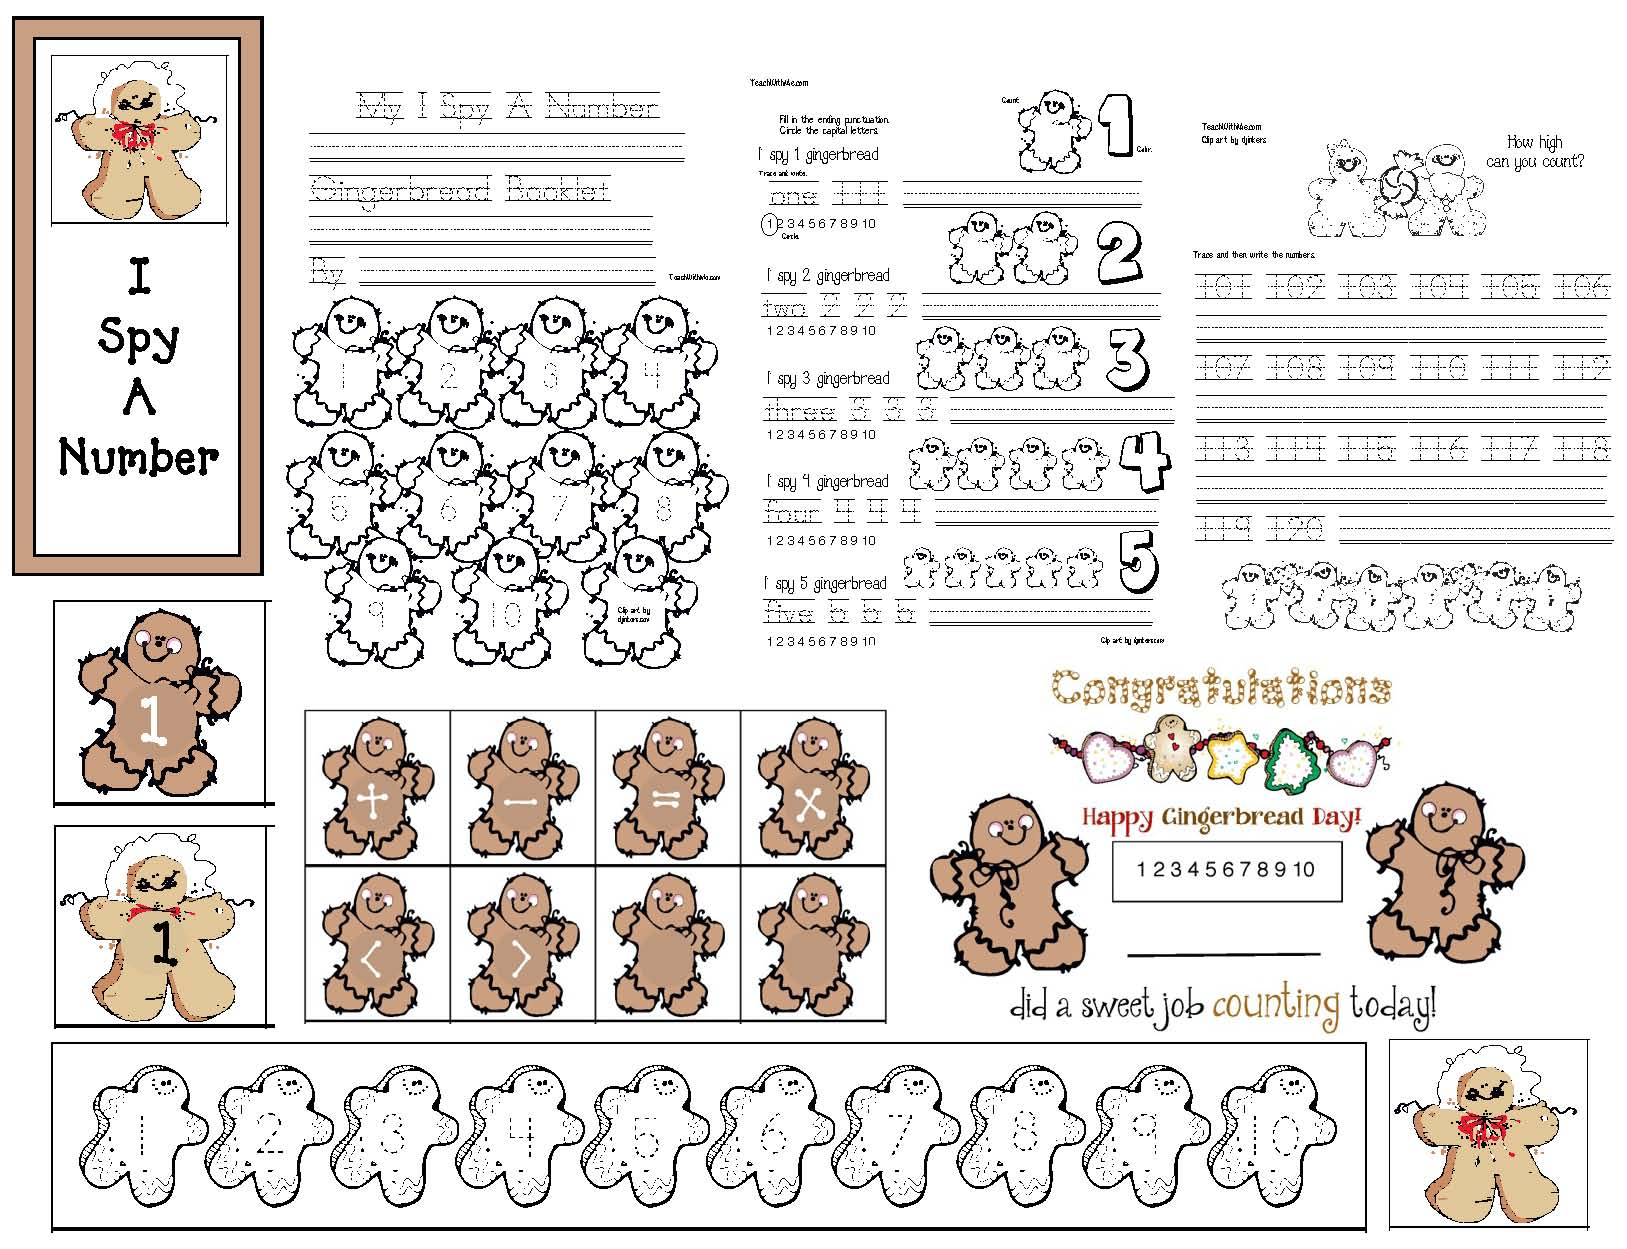 gingerbread activities, skip counting activities, gingerbread centers, gingerbread math, gingerbread number cards, gingerbread lessons, common core gingerbread, gingerbread games, gingerbread certificates, skip counting with gingerbread, gingerbread bookmarks